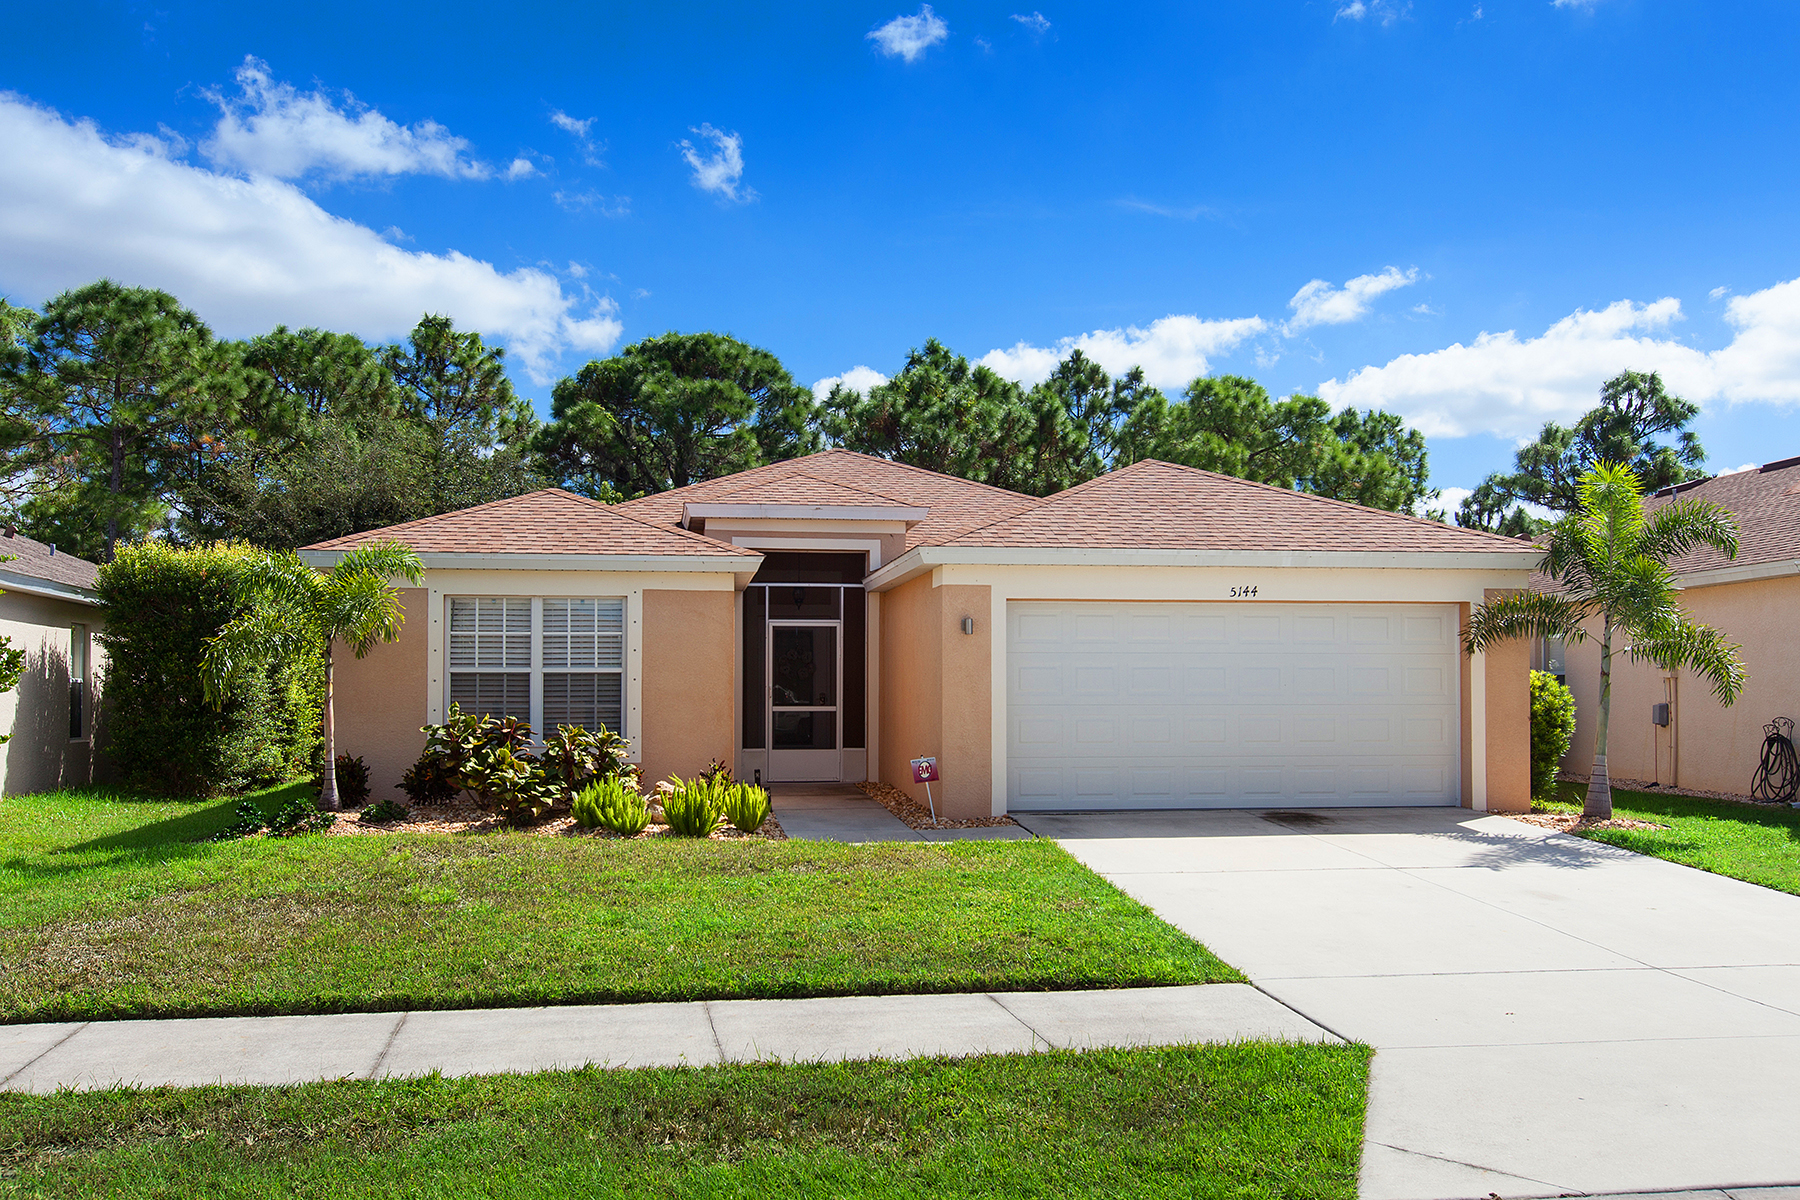 Single Family Home for Sale at VENTURA VILLAGE 5144 Layton Dr Venice, Florida, 34293 United States